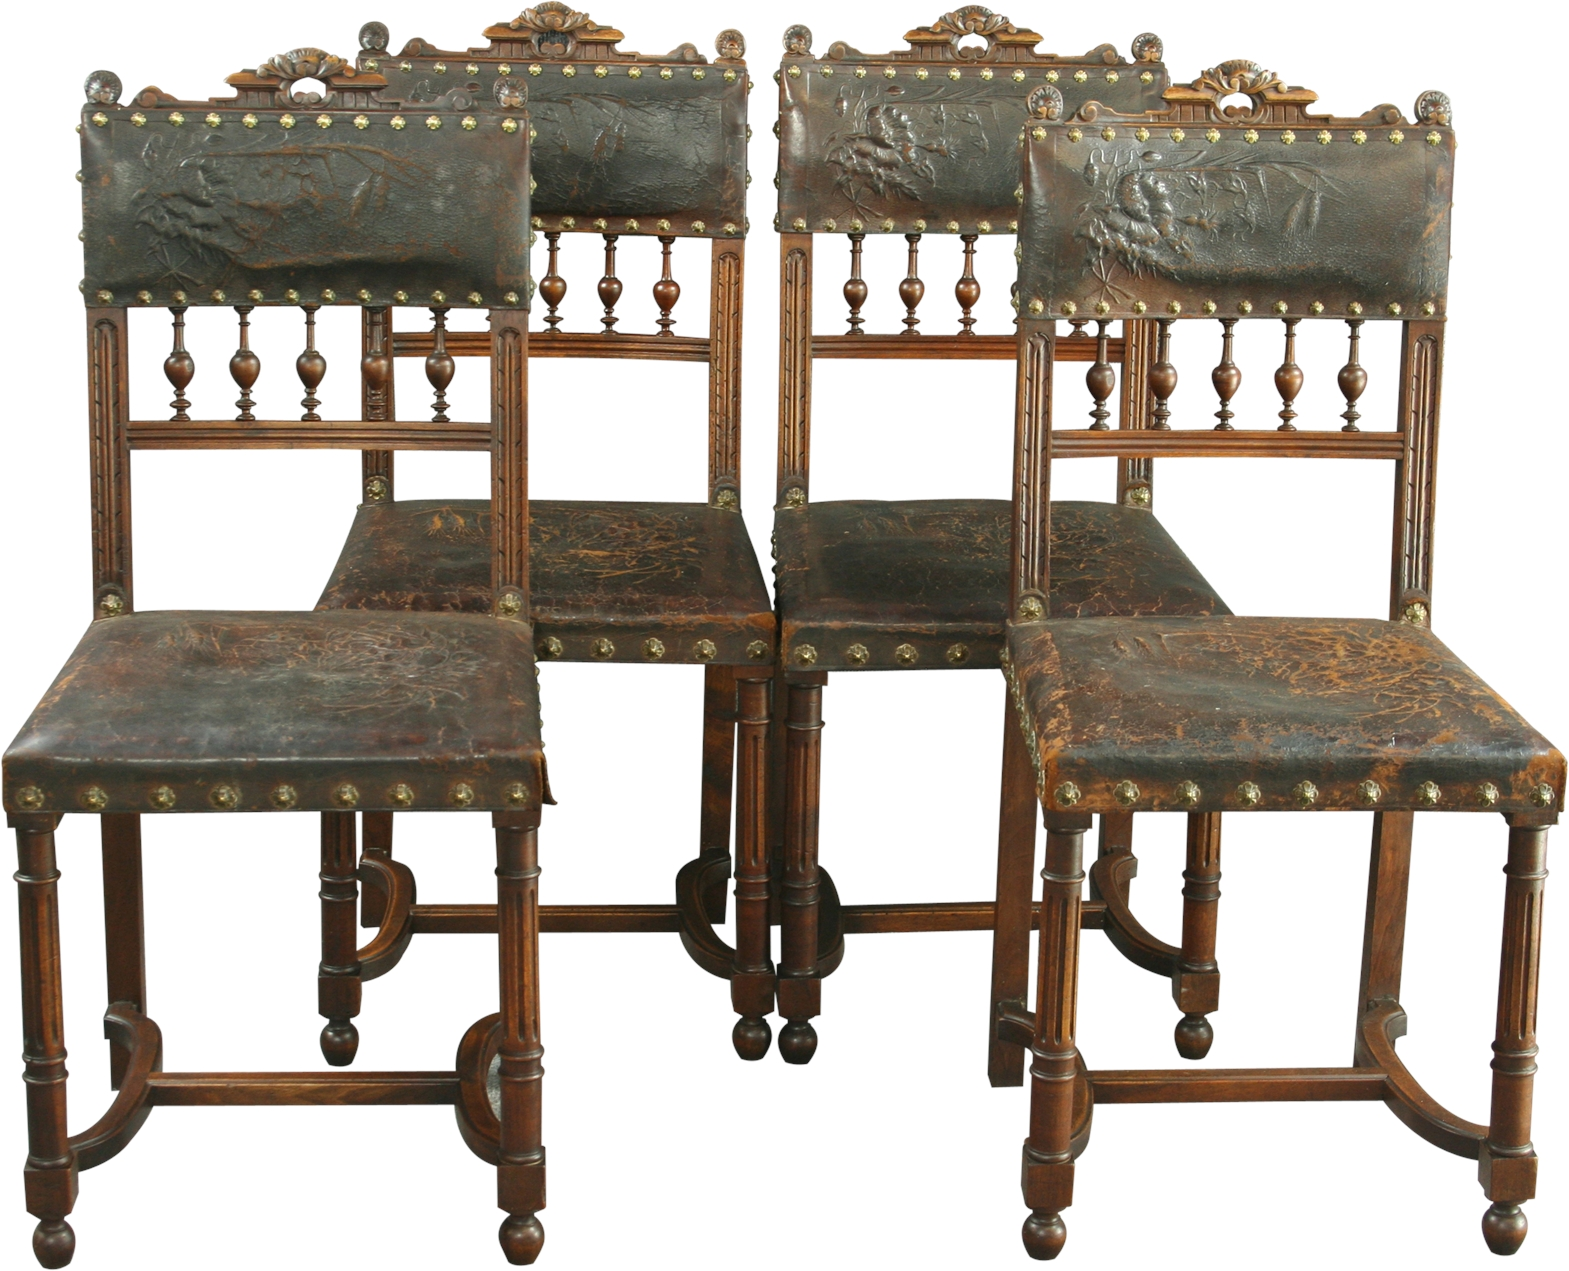 SET 4 ANTIQUE FRENCH RENAISSANCE STYLE DINING CHAIRS